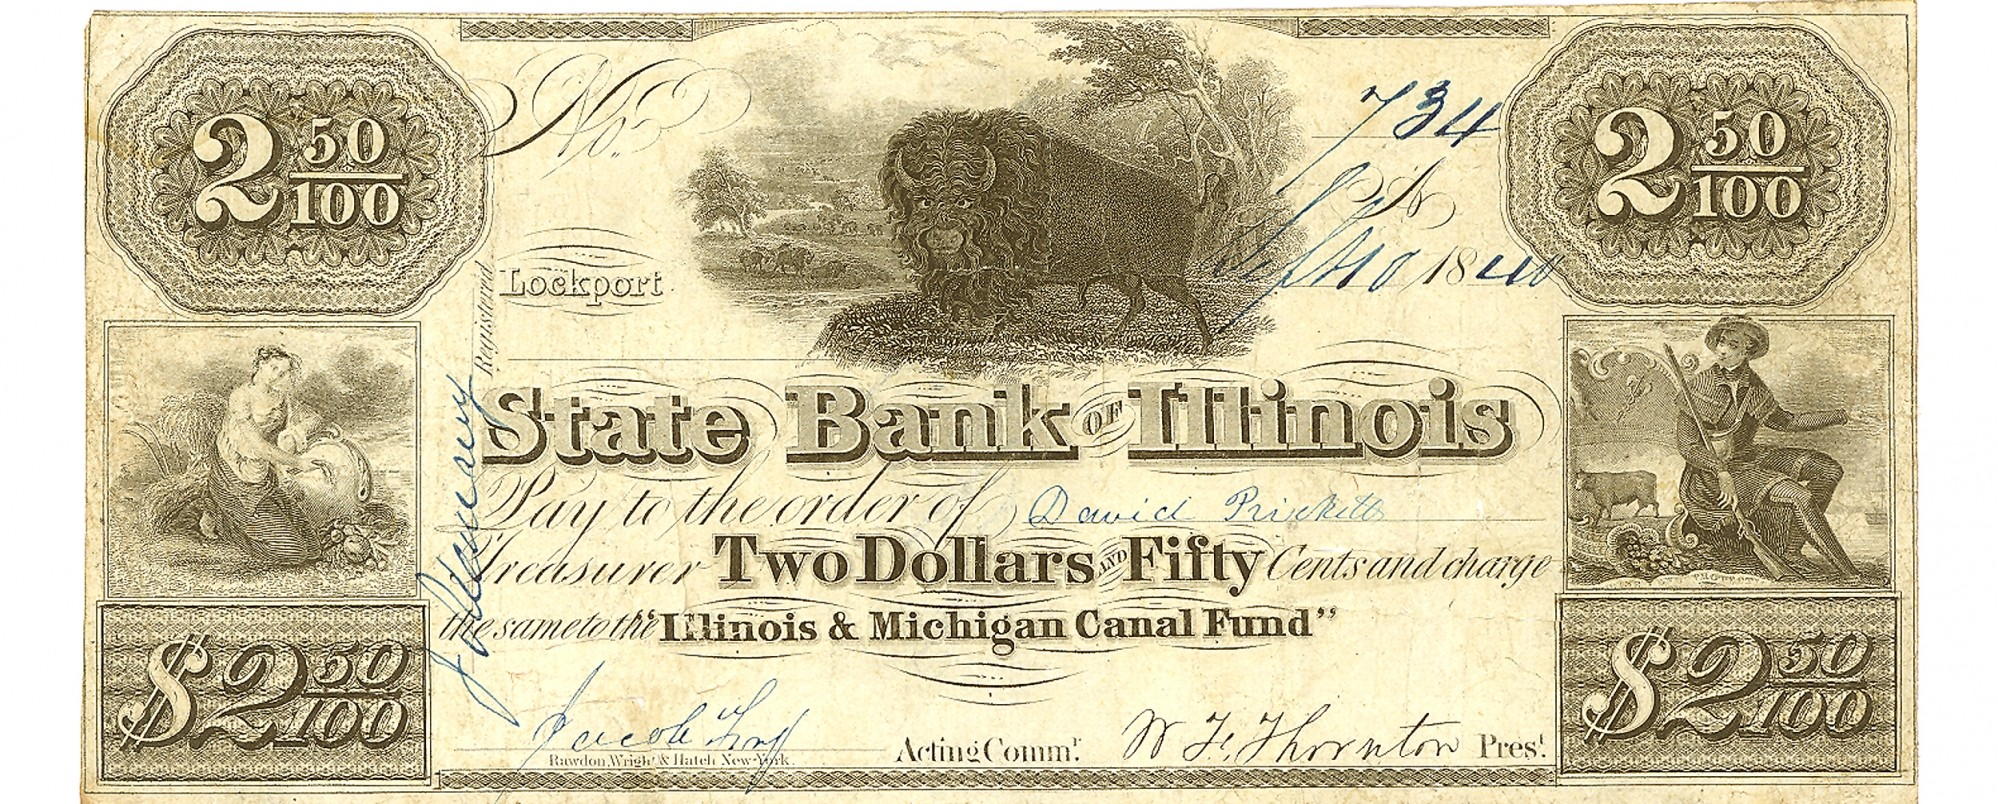 THE STATE BANK OF ILLINOIS LOCKPORT $2.50 NOTE